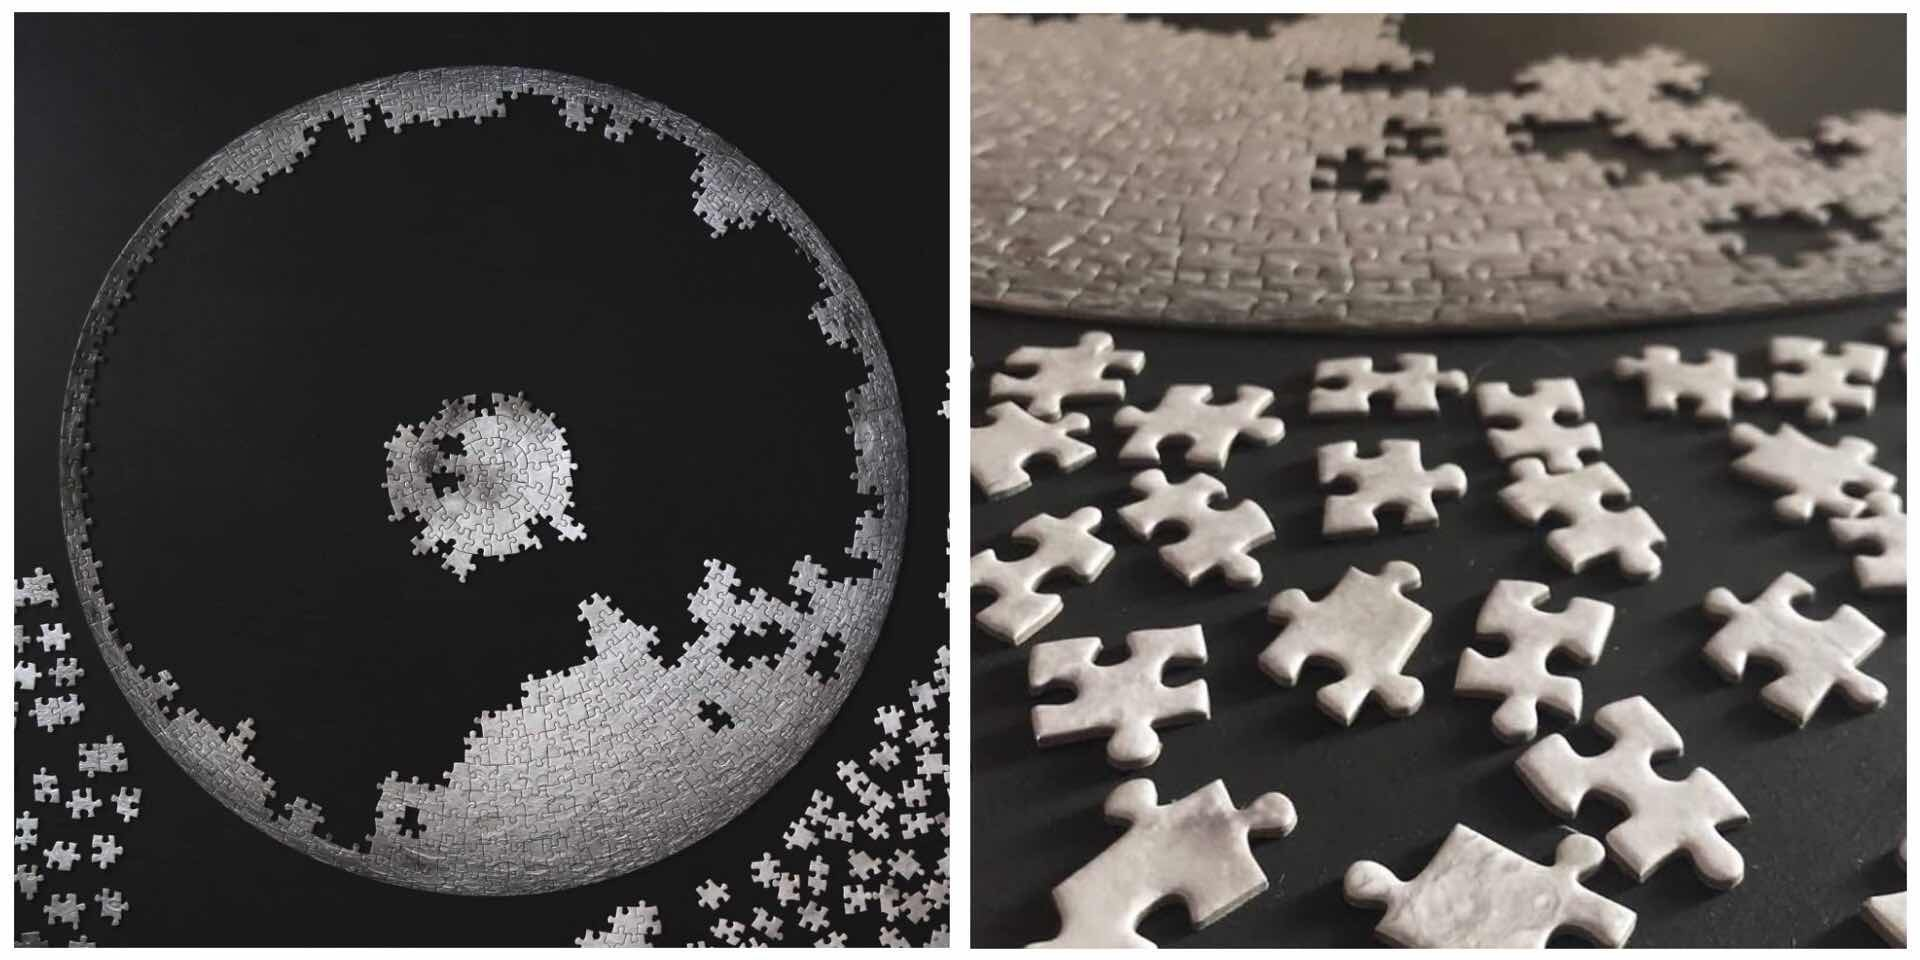 the-moon-jigsaw-puzzle-by-four-point-puzzles-2